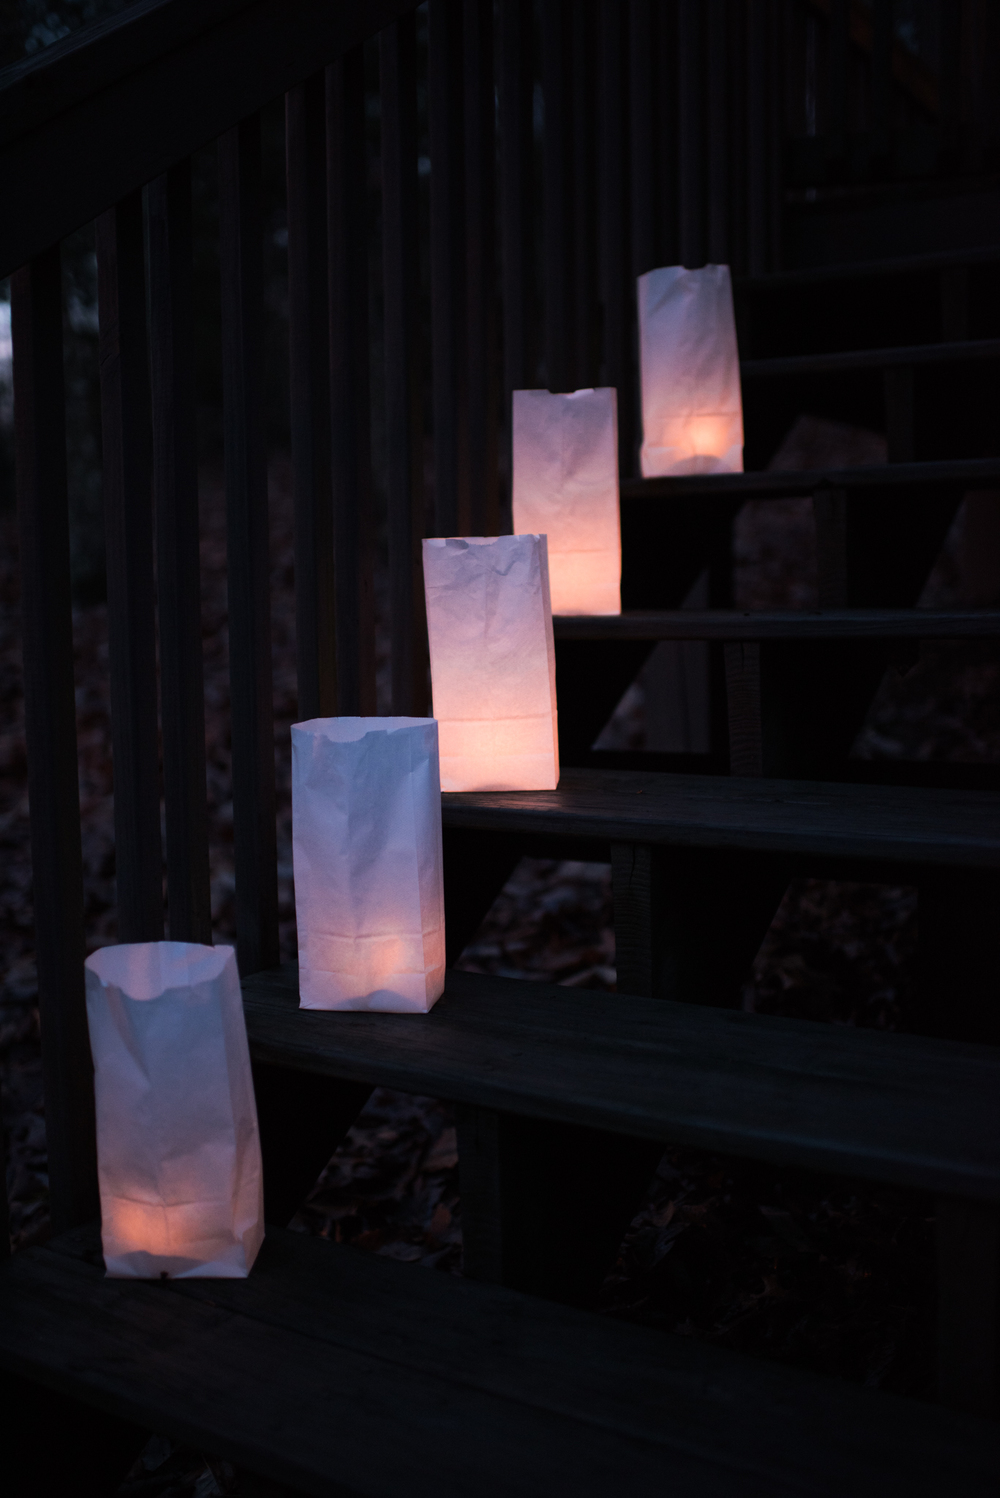 Asheville Folk: A Thrifty Christmas by Chelsea Lane. And lastly, create a classic luminary. White lunch bags were less than $3 at the grocery. Add a votive and rocks/sand to steady. Set the along your driveway, porch, stairway… glorious.